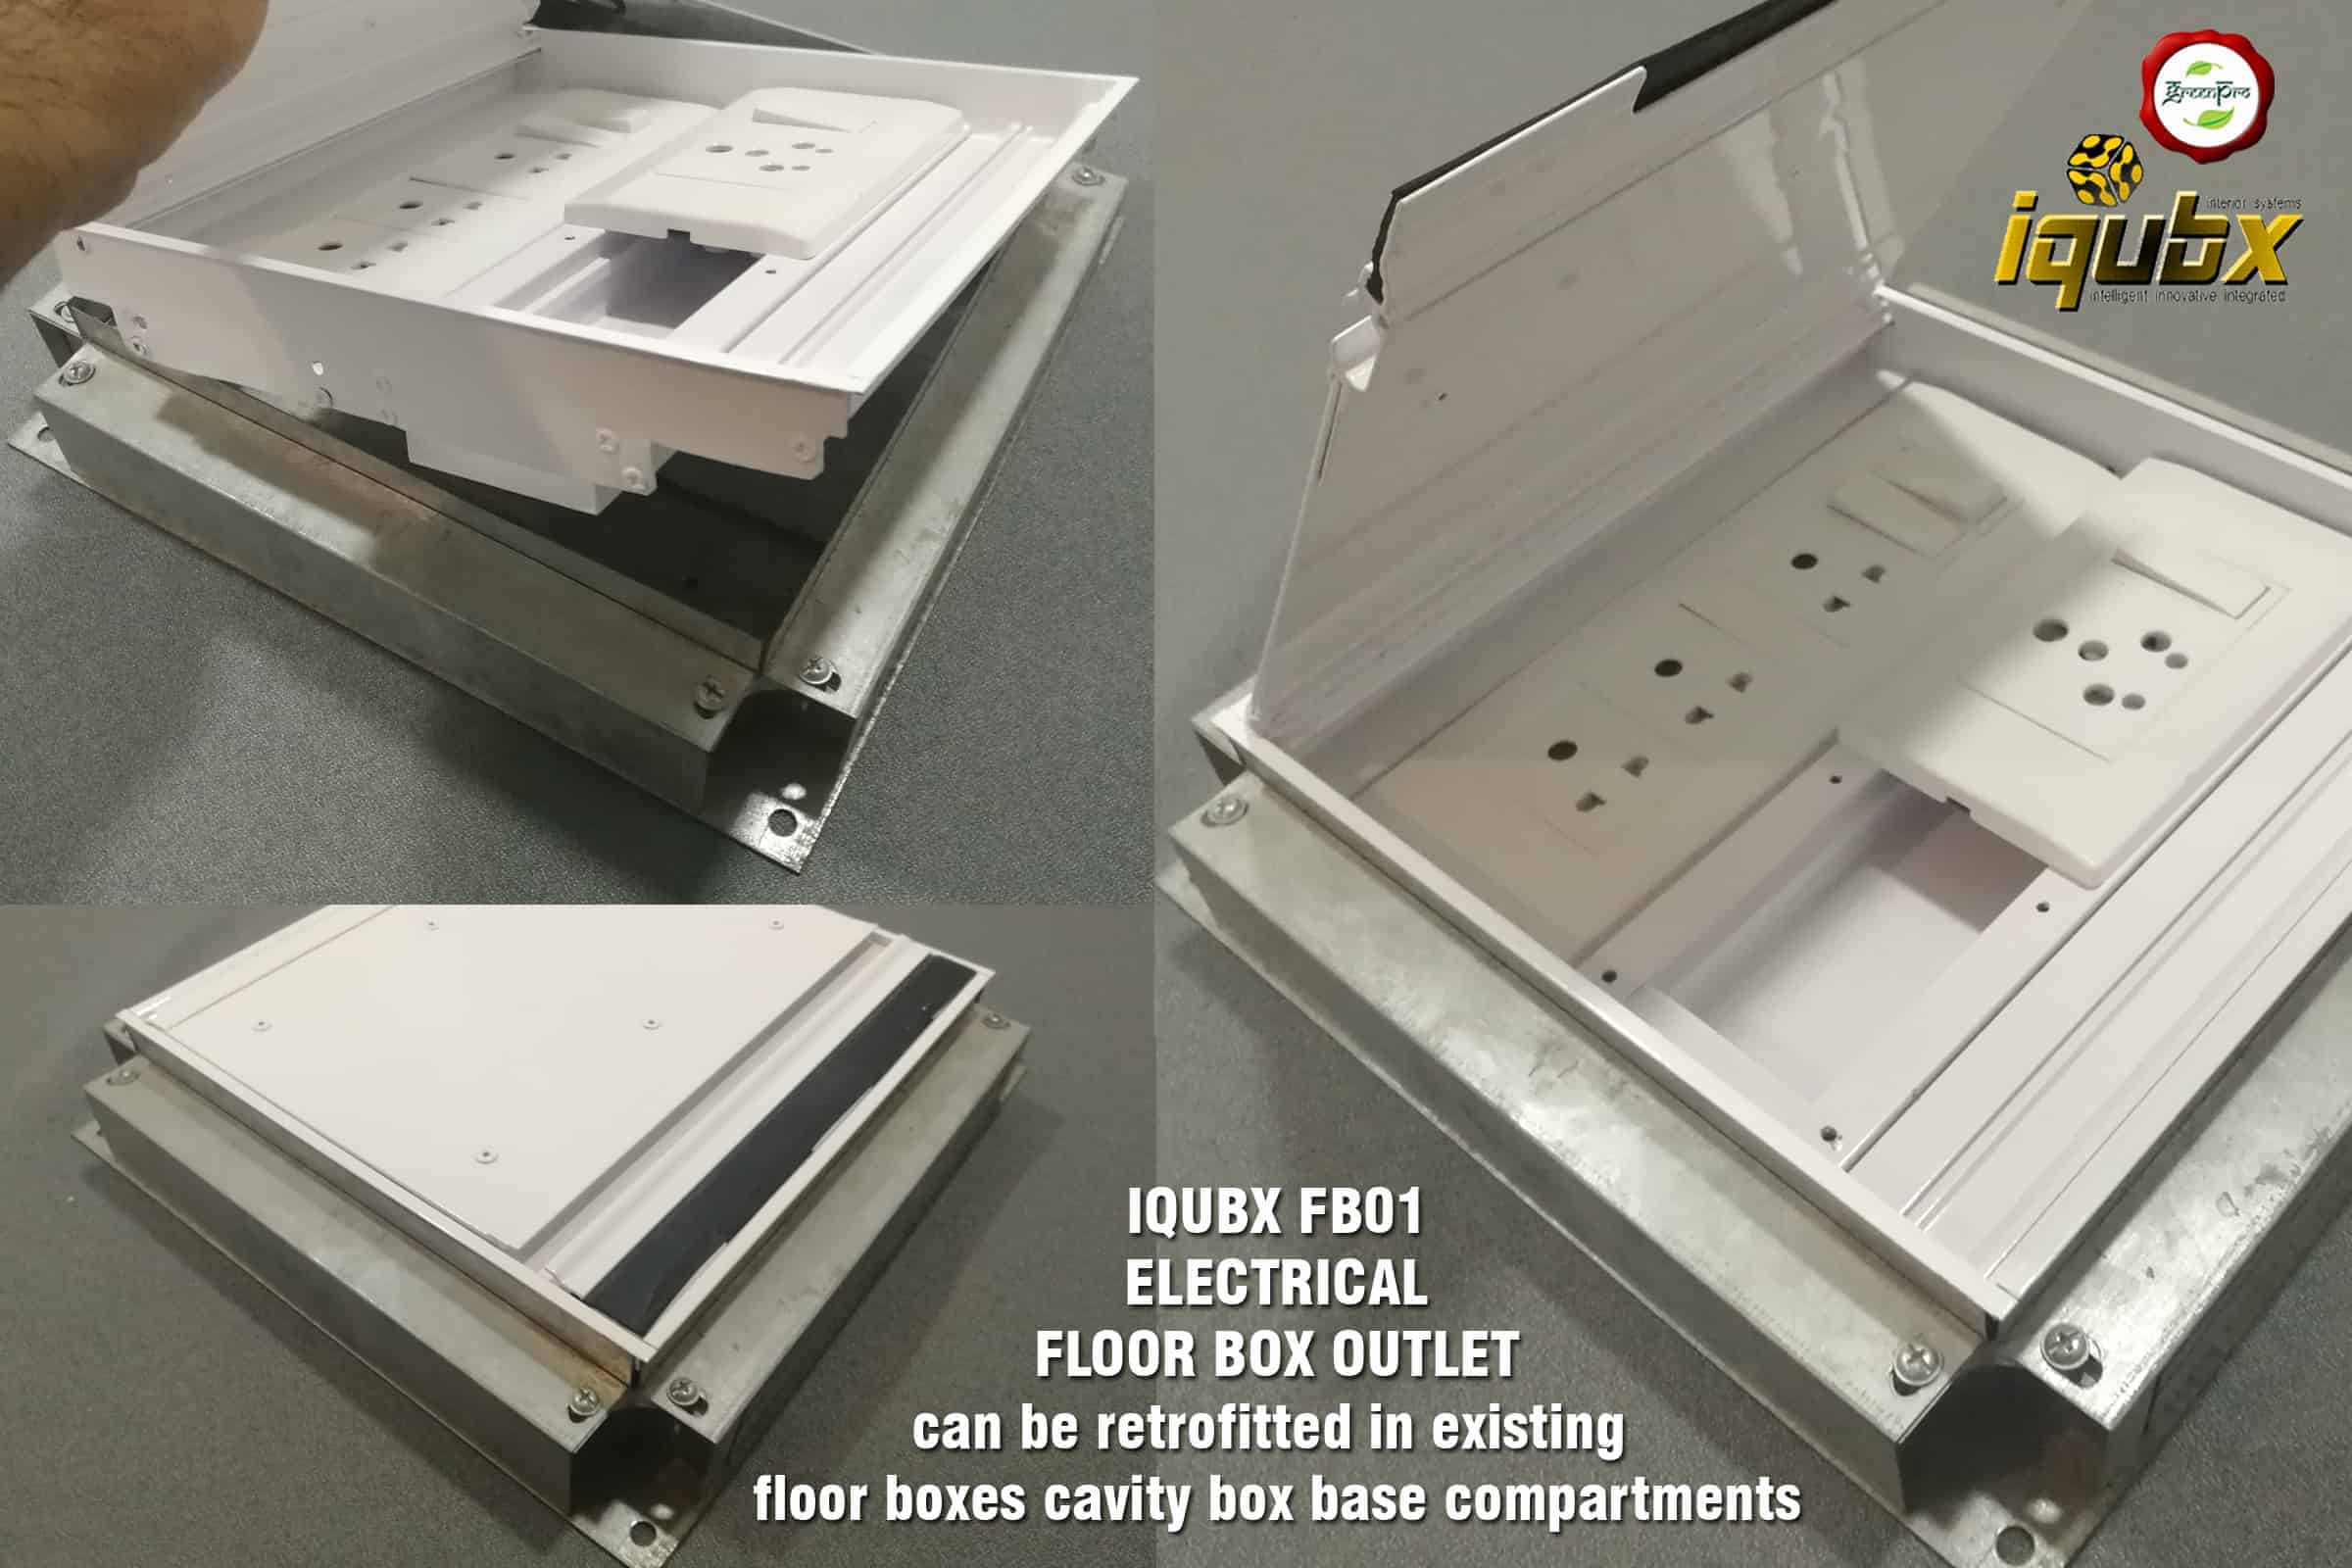 iqubx FB01 electrical floor box outlet RETROFITTING